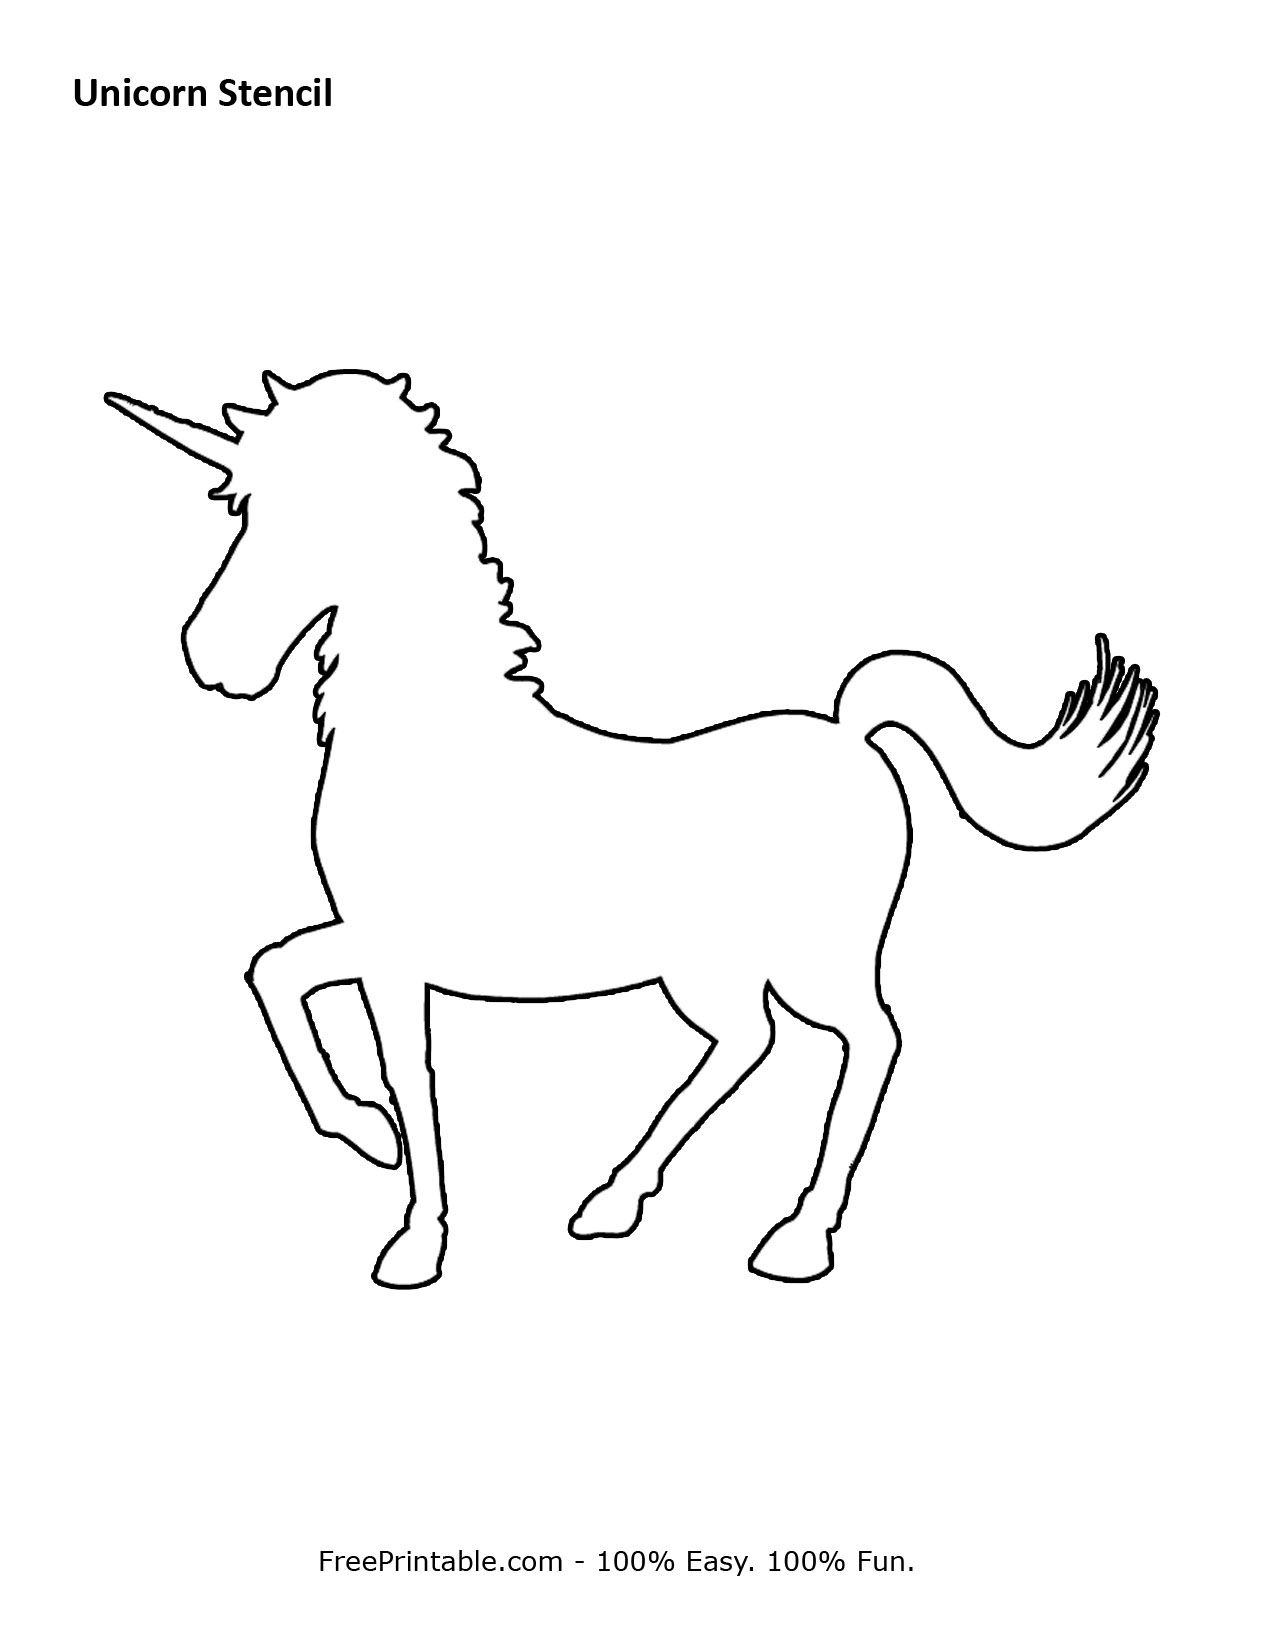 Free Printable Unicorn Stencils | Crafts & Sewing | Pinterest - Free Printable Stencils